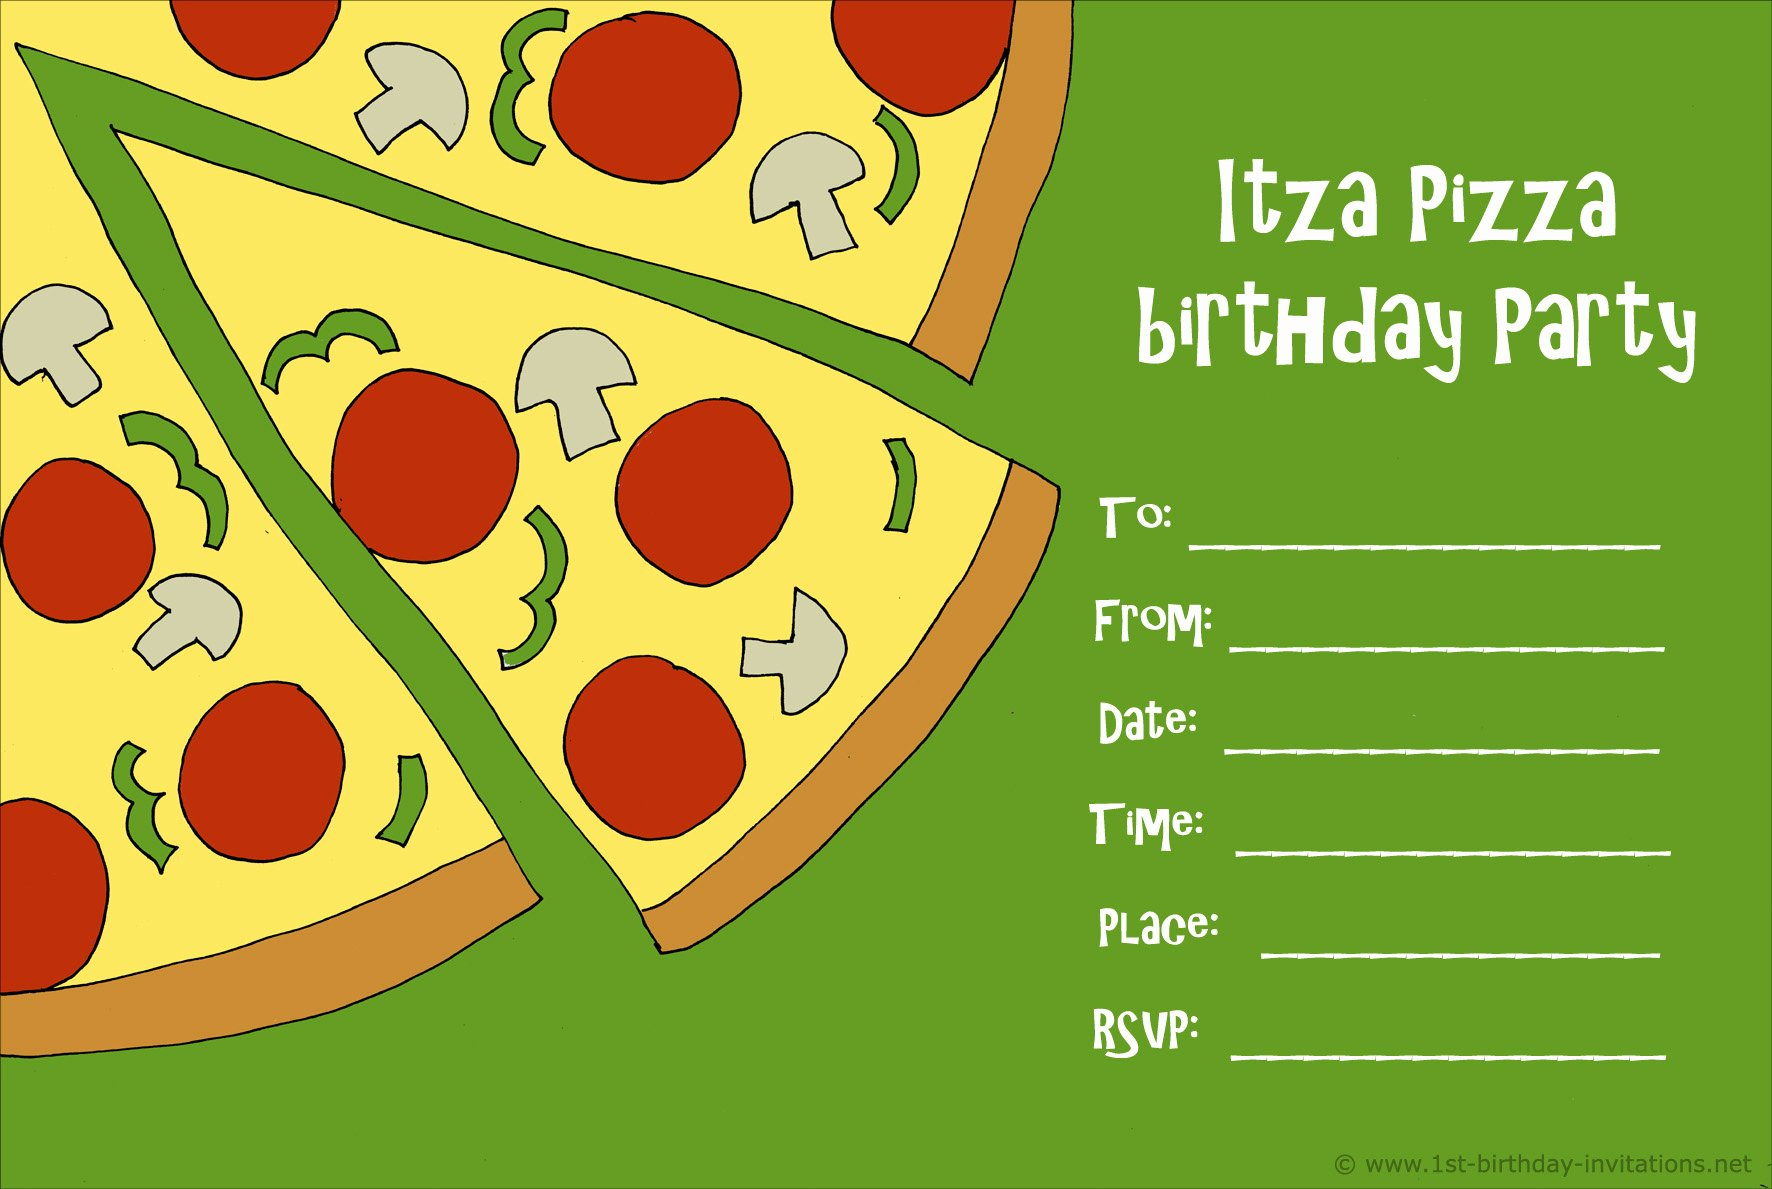 Pizza Party Invites Template Best Of 14 Printable Birthday Invitations Many Fun themes